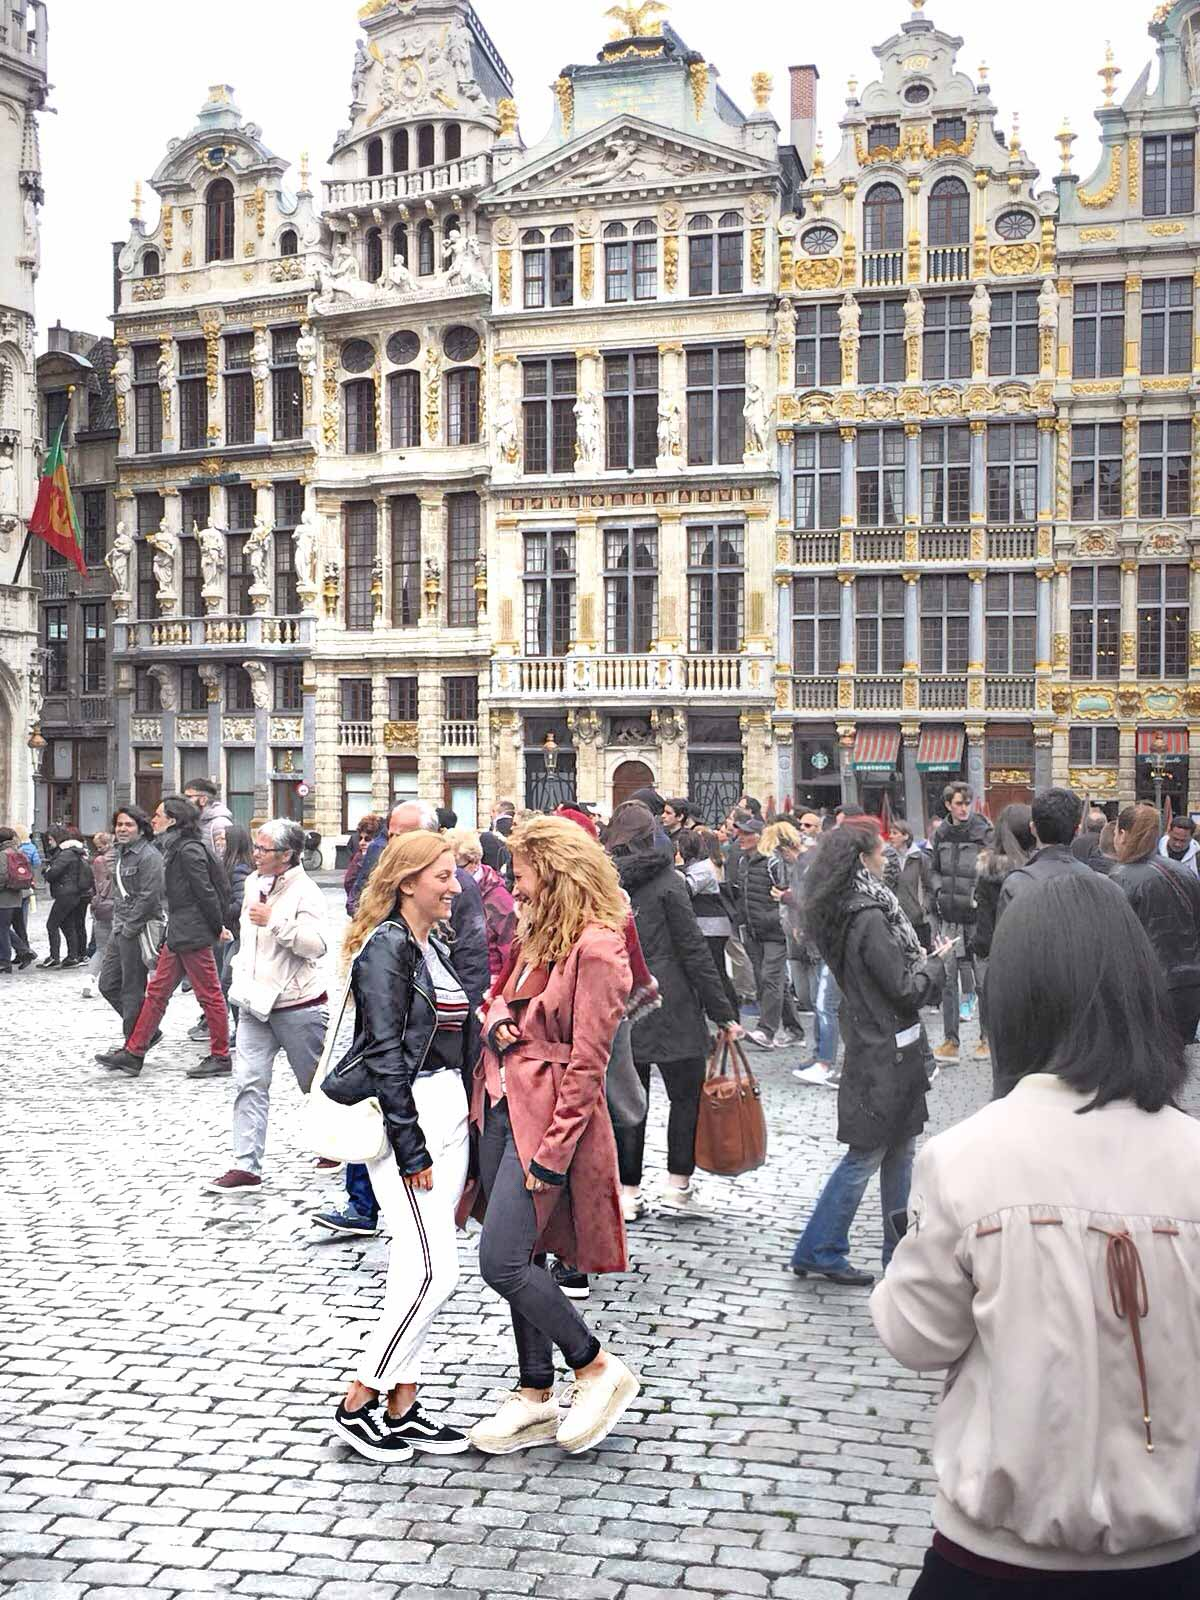 Crowds on the Grand Place of Brussels